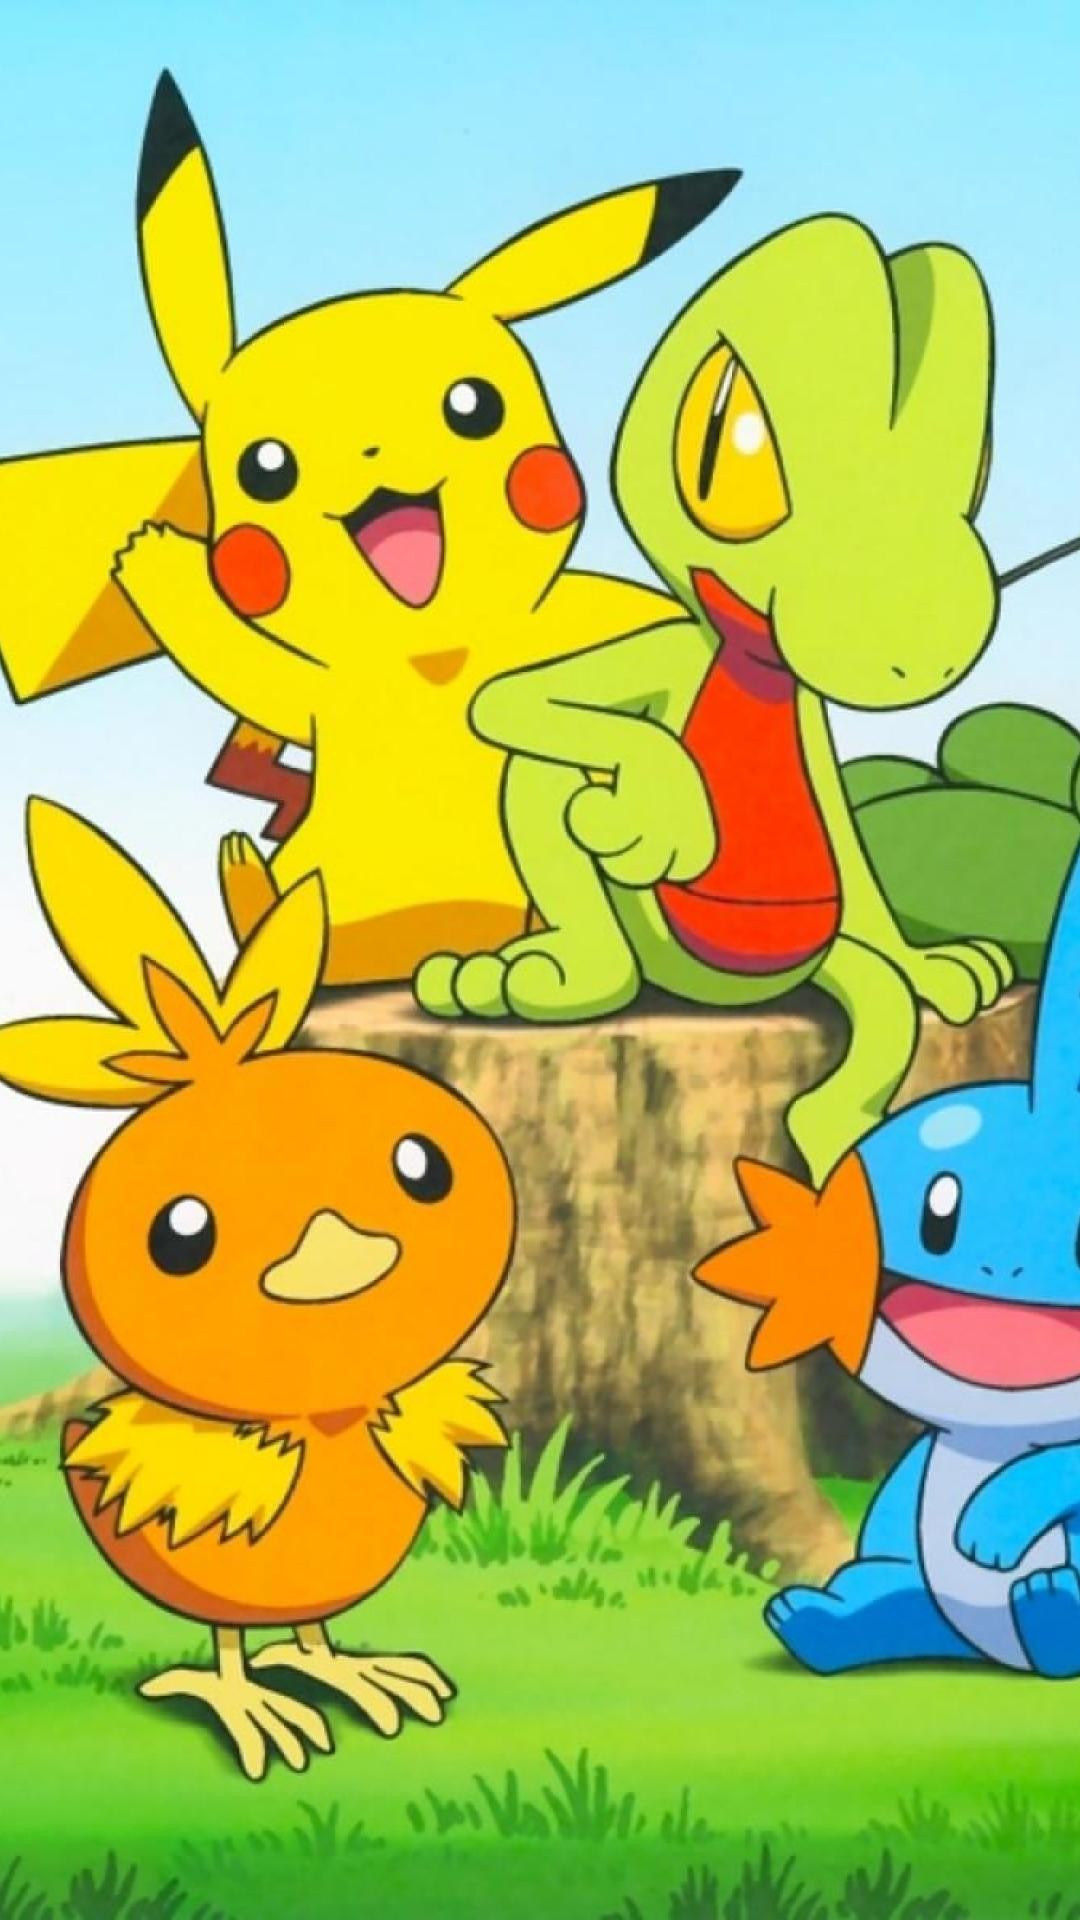 Pikachu wallpapers for iPhone 7